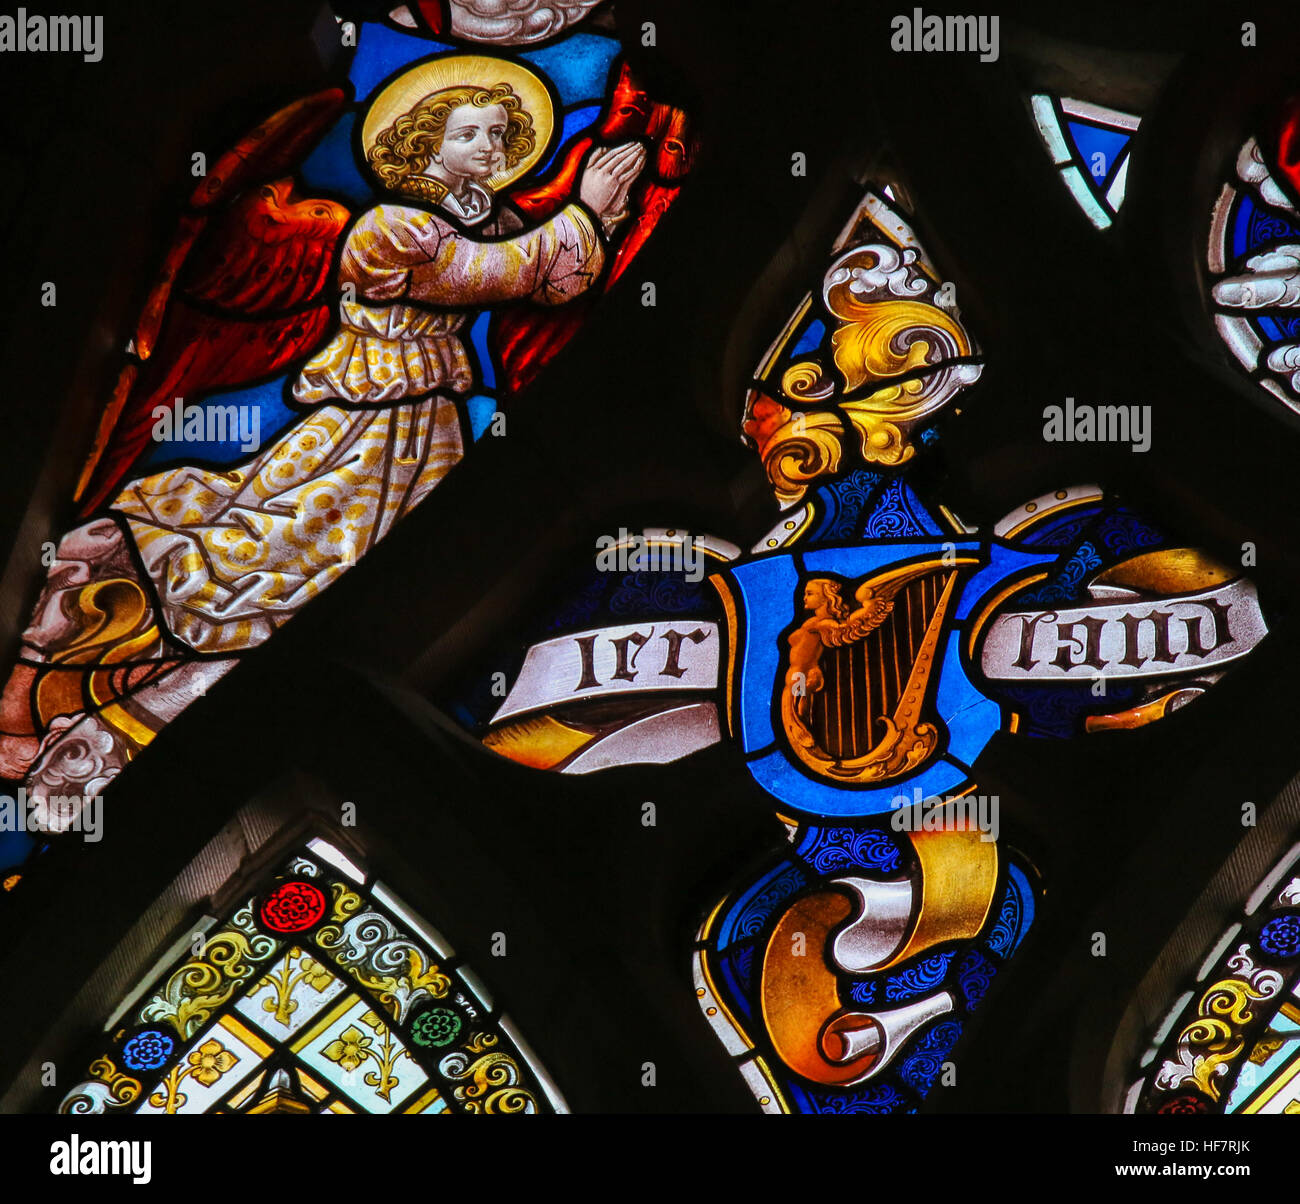 Stained Glass depicting a Celtic Harp as symbol of Ireland in the Cathedral of Saint Bavo in Ghent, Belgium. - Stock Image